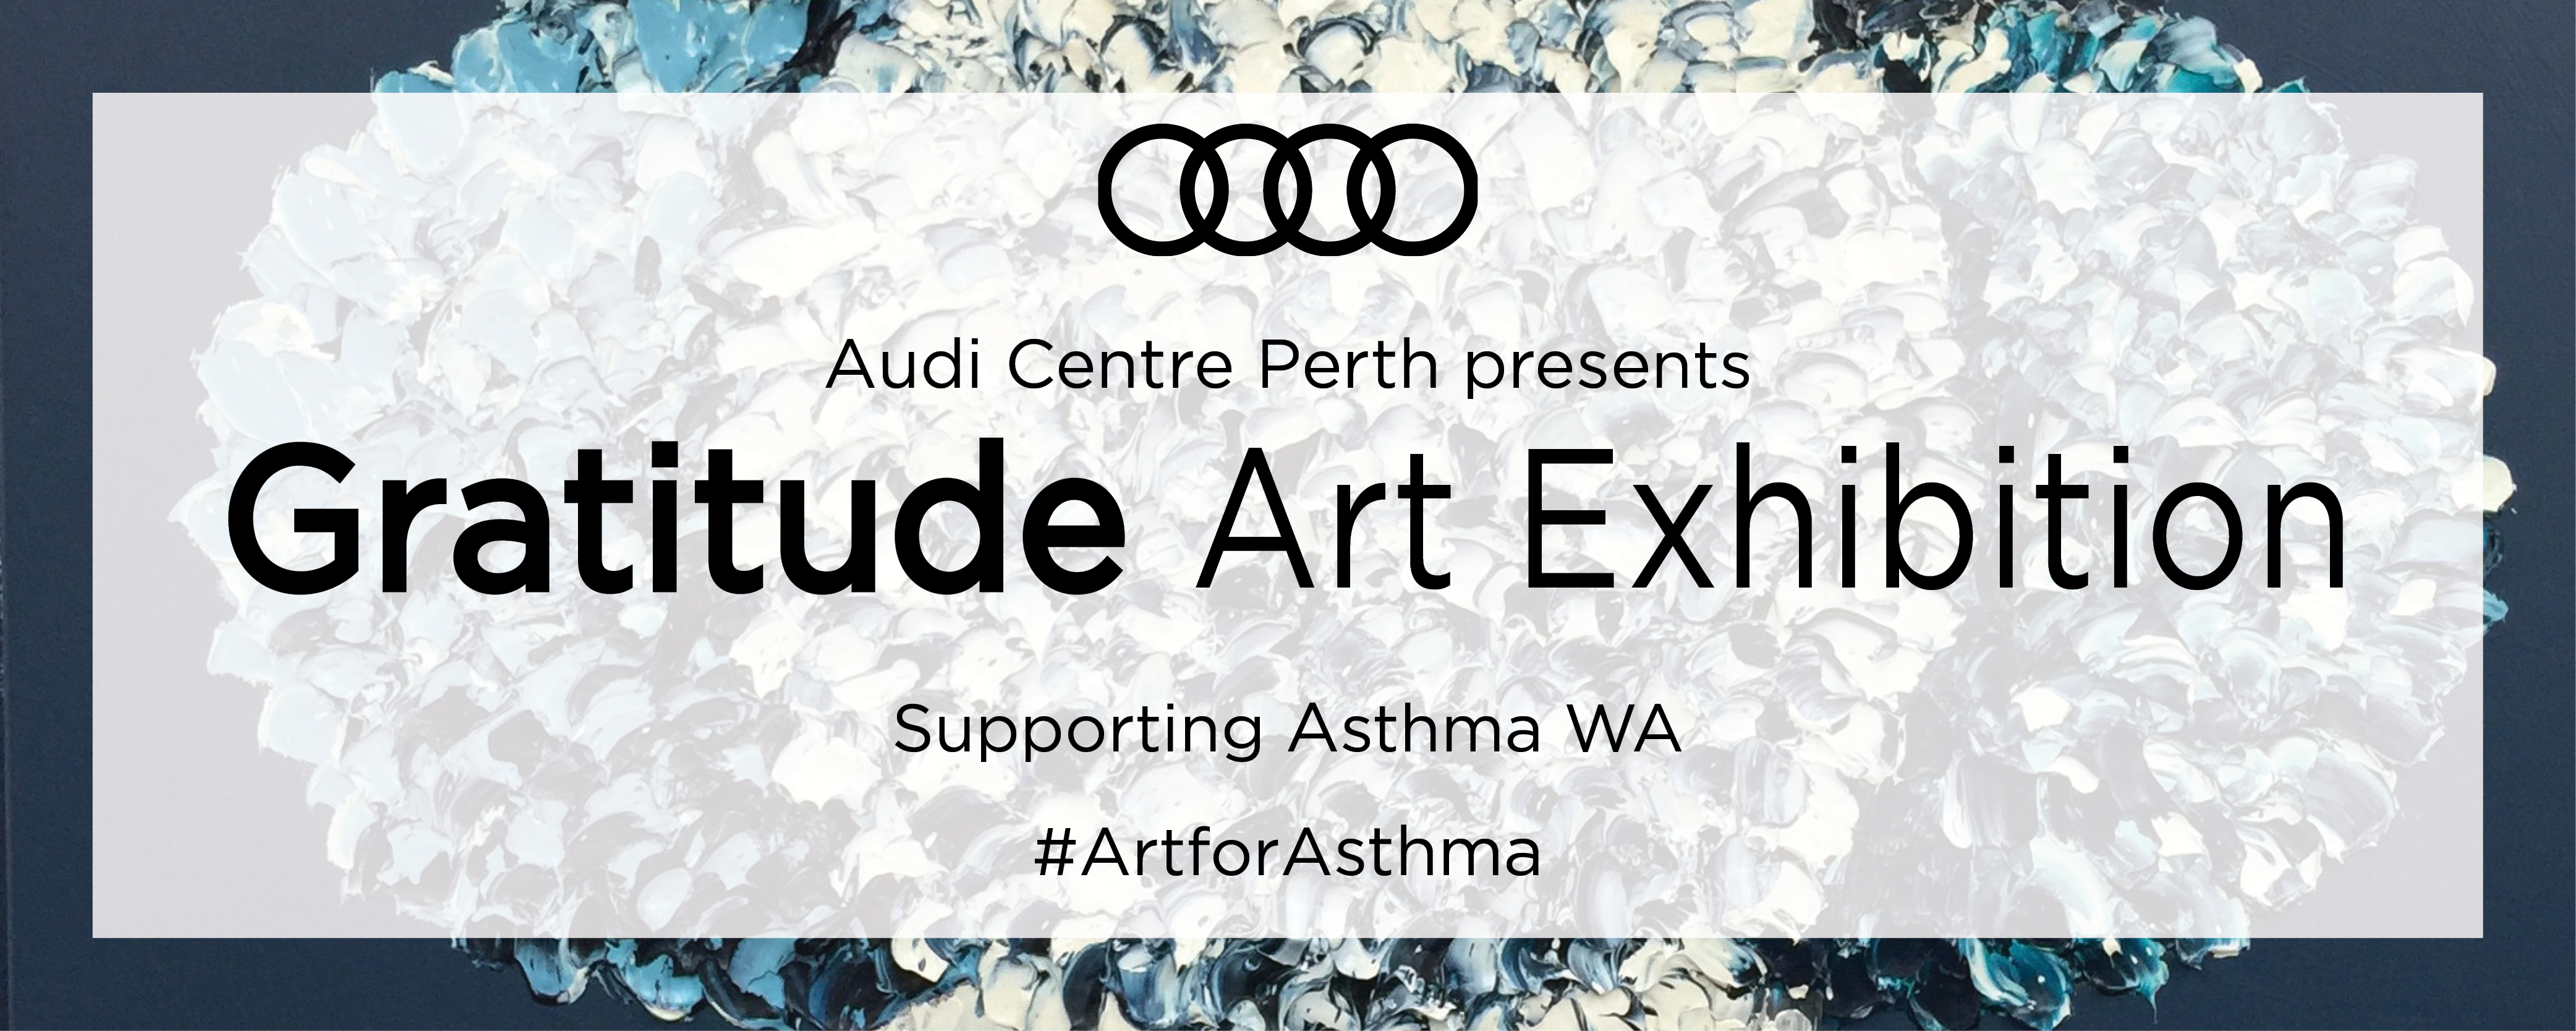 Gratitude Art Exhibition